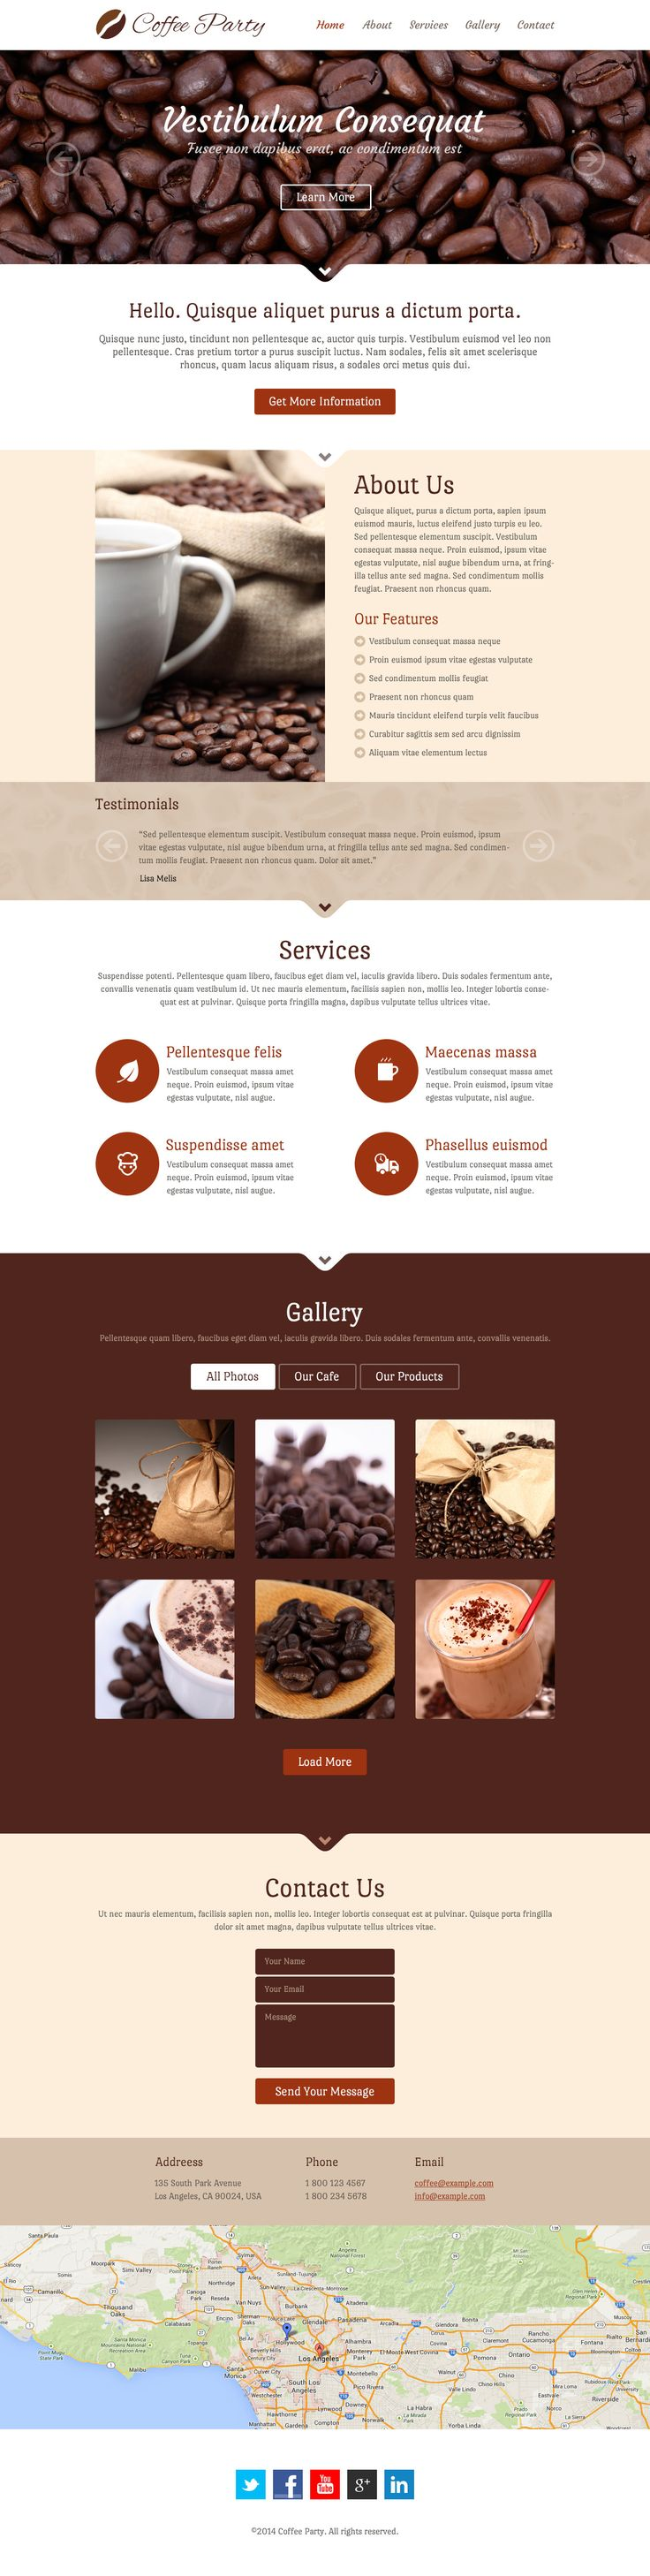 Get something great brewing with Coffee Party, a modern and responsive singlepage template with a Javabean theme. This features sections to list your services, a photo gallery to show off your cafe and products, and a contact section with a form, local information, and a fullwidth map. This template includes PSDs targeting tablets (768×1024) and phones (320×480).  http://www.templateblender.com/psd-templates/coffee-party-psd-template/